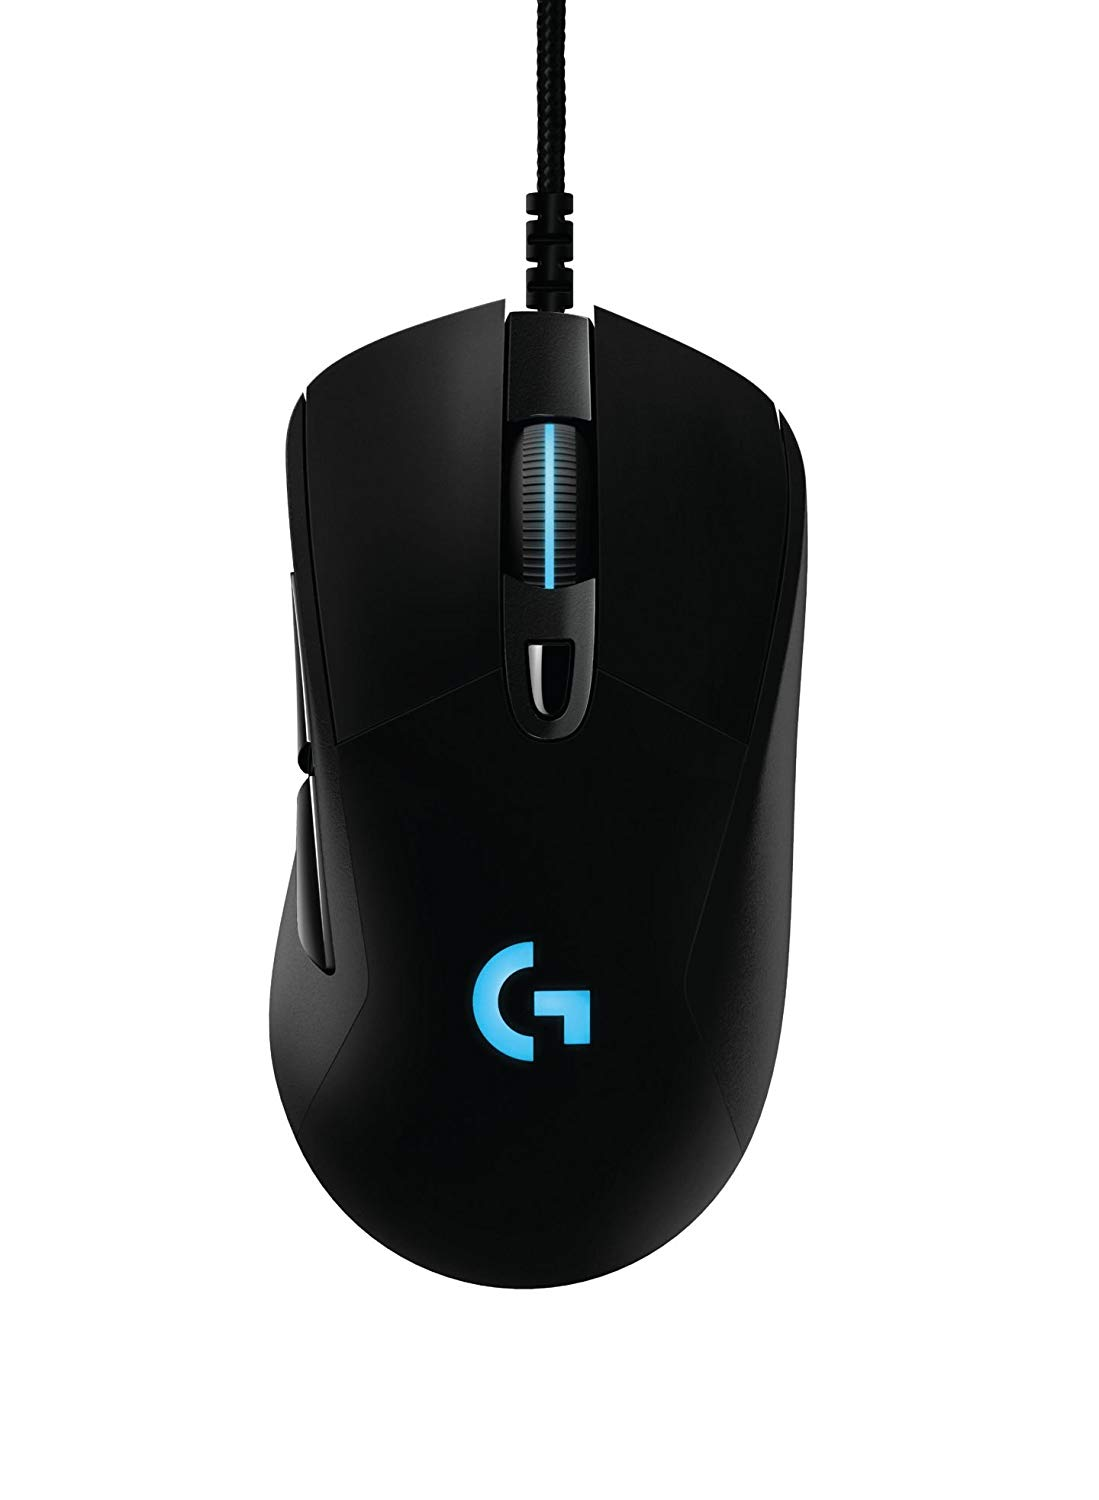 Logitech G403 Wired Optical Gaming Mouse for PC, MAC, USB